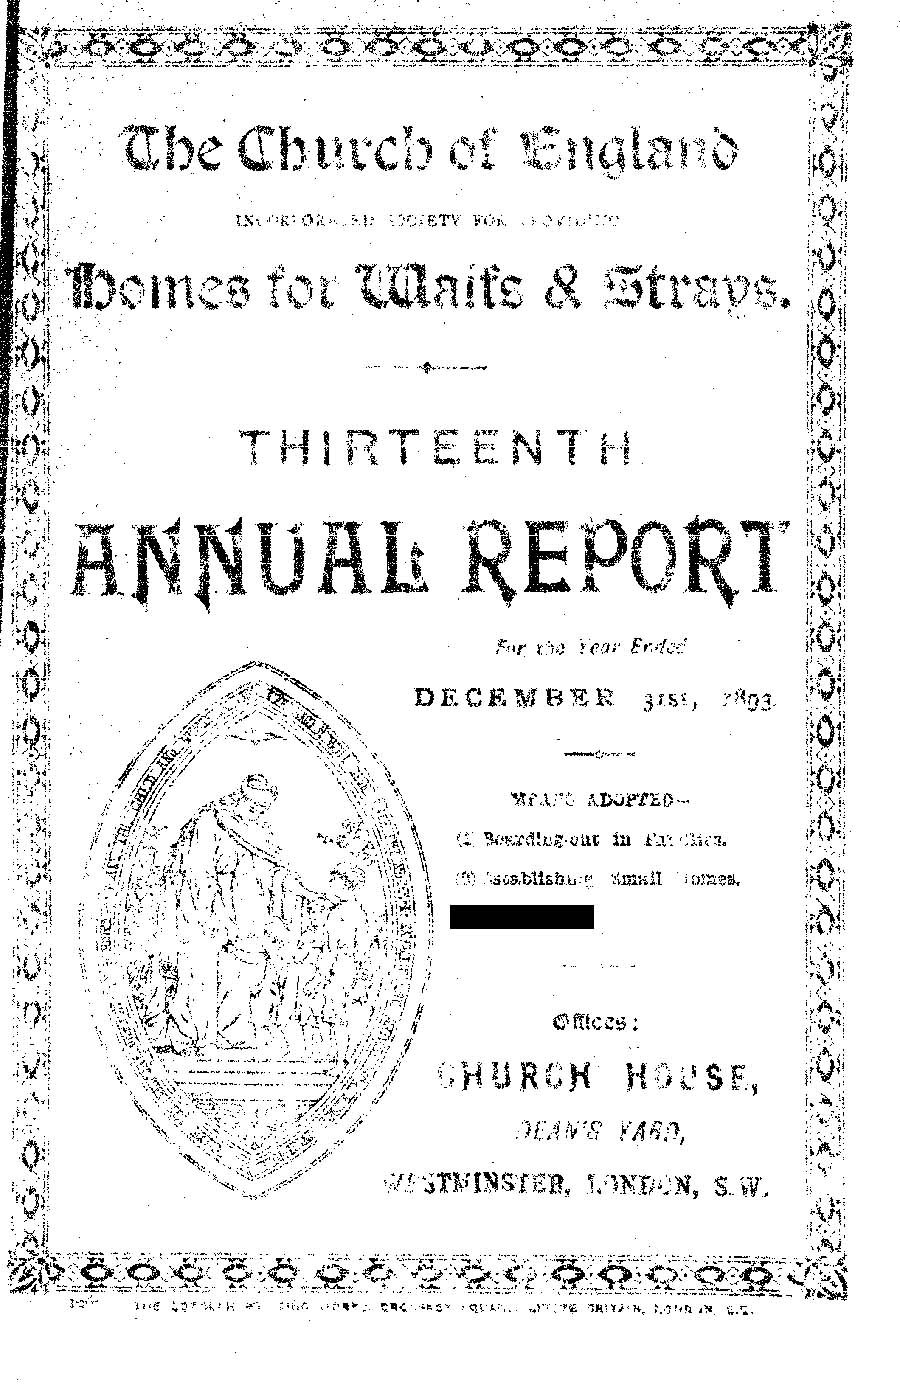 Annual Report 1893 - page 1